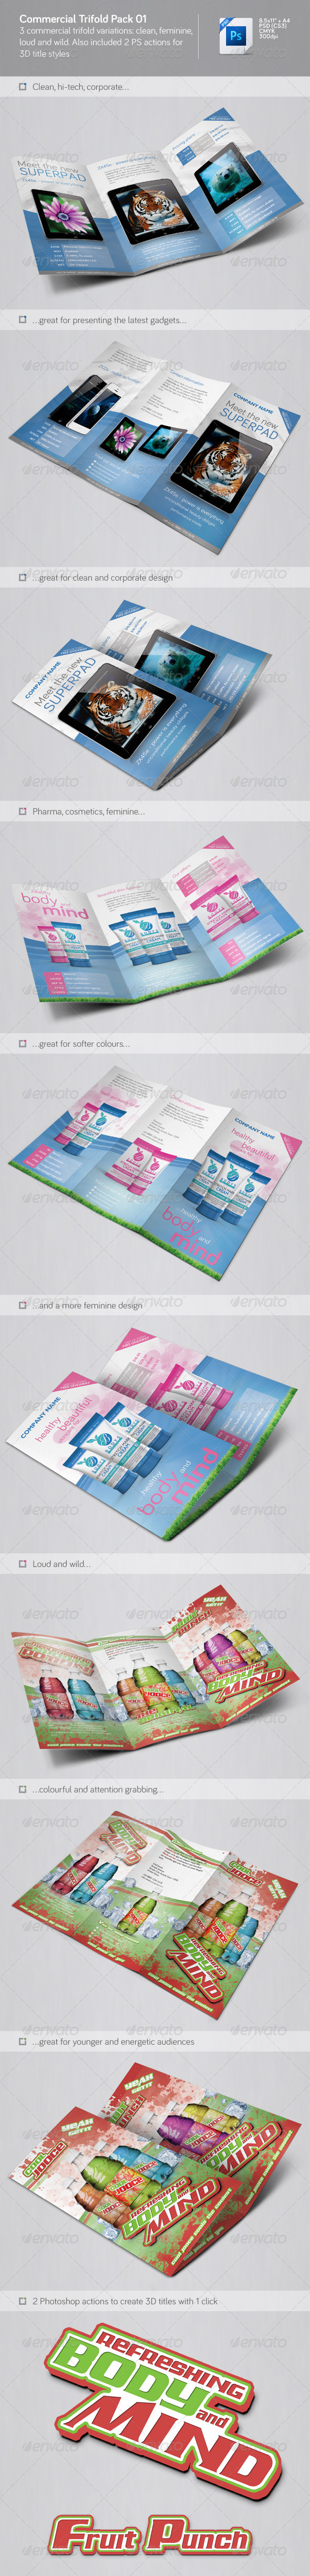 GraphicRiver Commercial trifolds pack 01 3310253